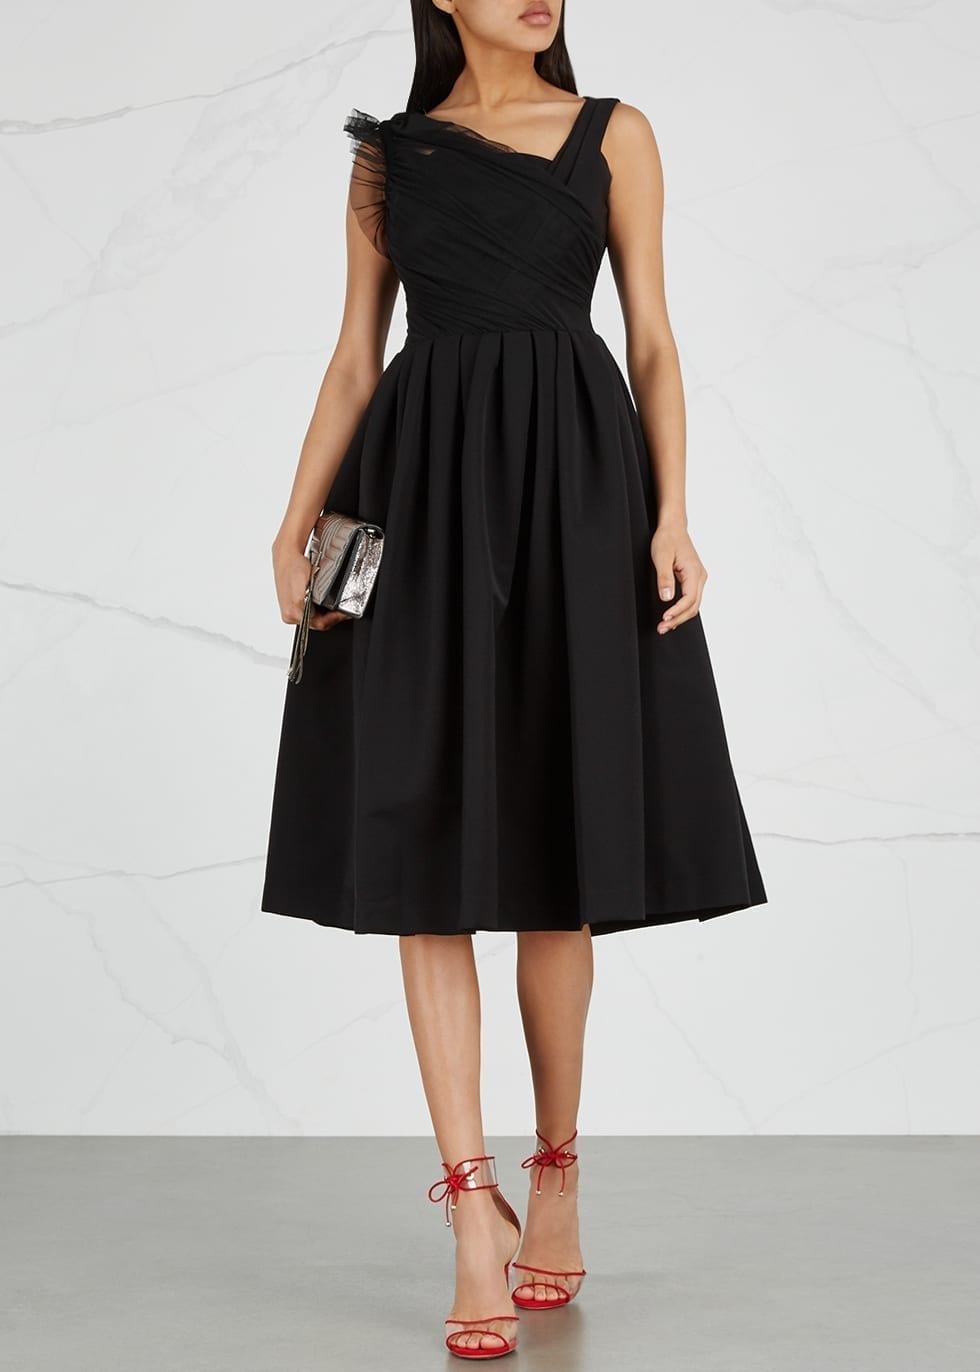 PREEN BY THORNTON BREGAZZI Una Off-the-shoulder Black Dress